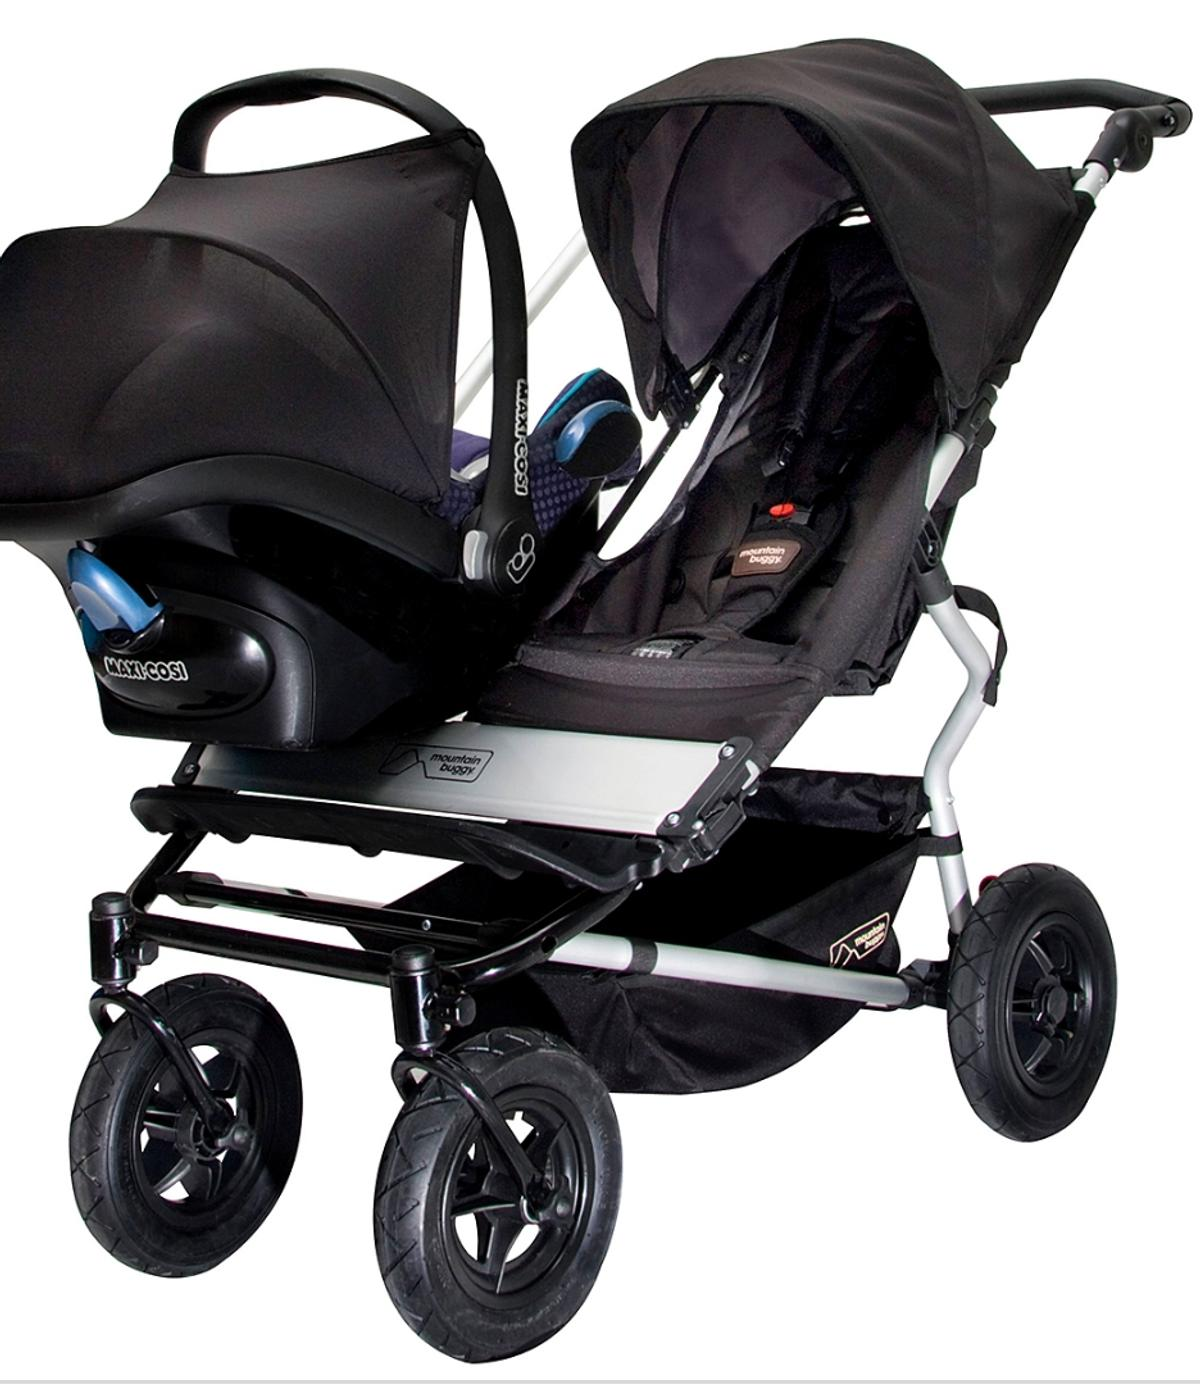 Mountain Buggy Car Seat Installation Mountain Buggy Duet Twins Buggy In L13 Liverpool For 460 00